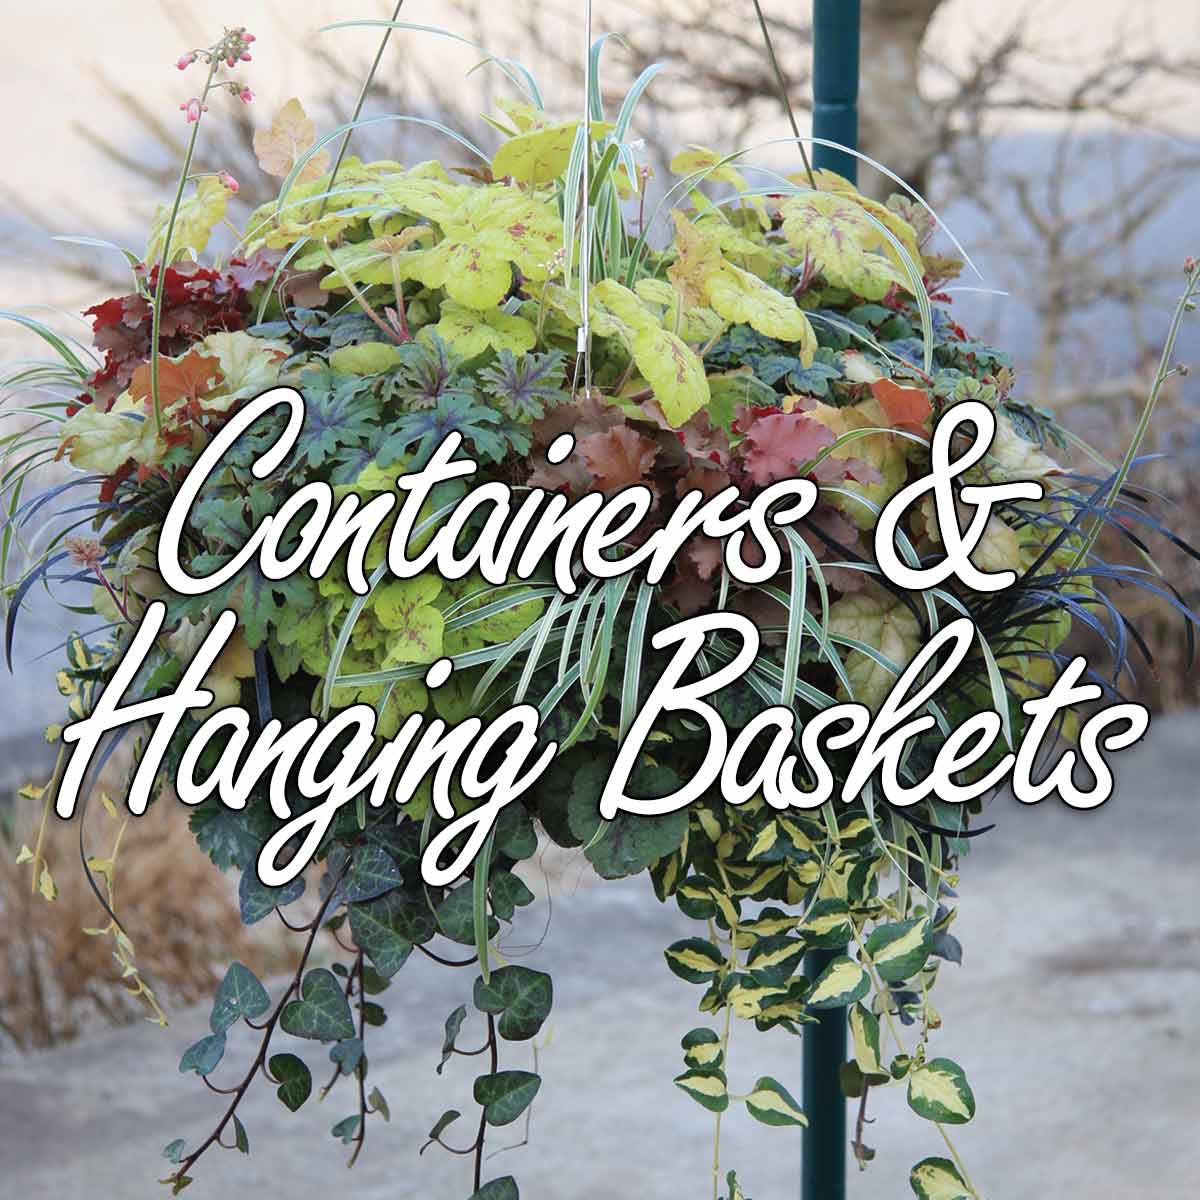 Containers & Hanging Baskets